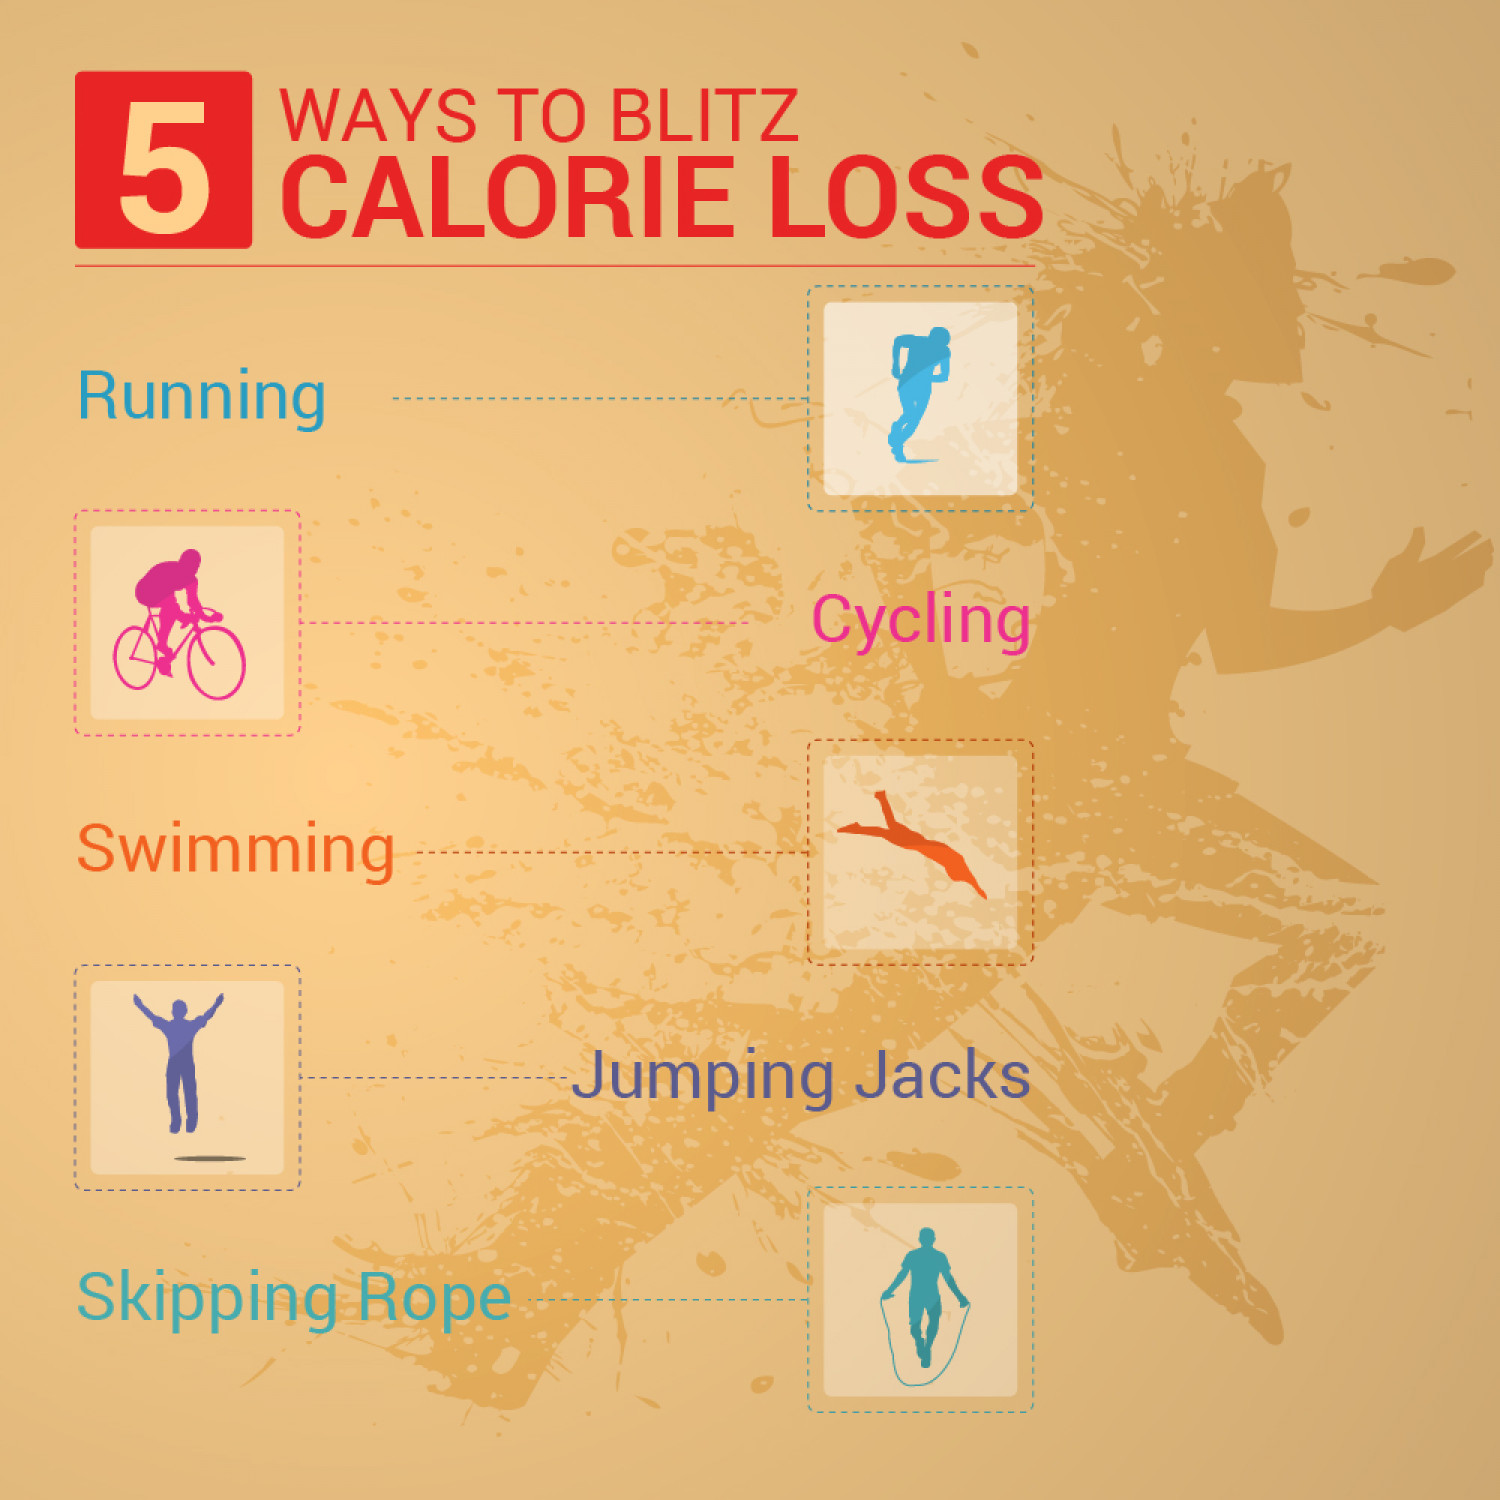 5 Ways To Blitz Calorie Loss Infographic